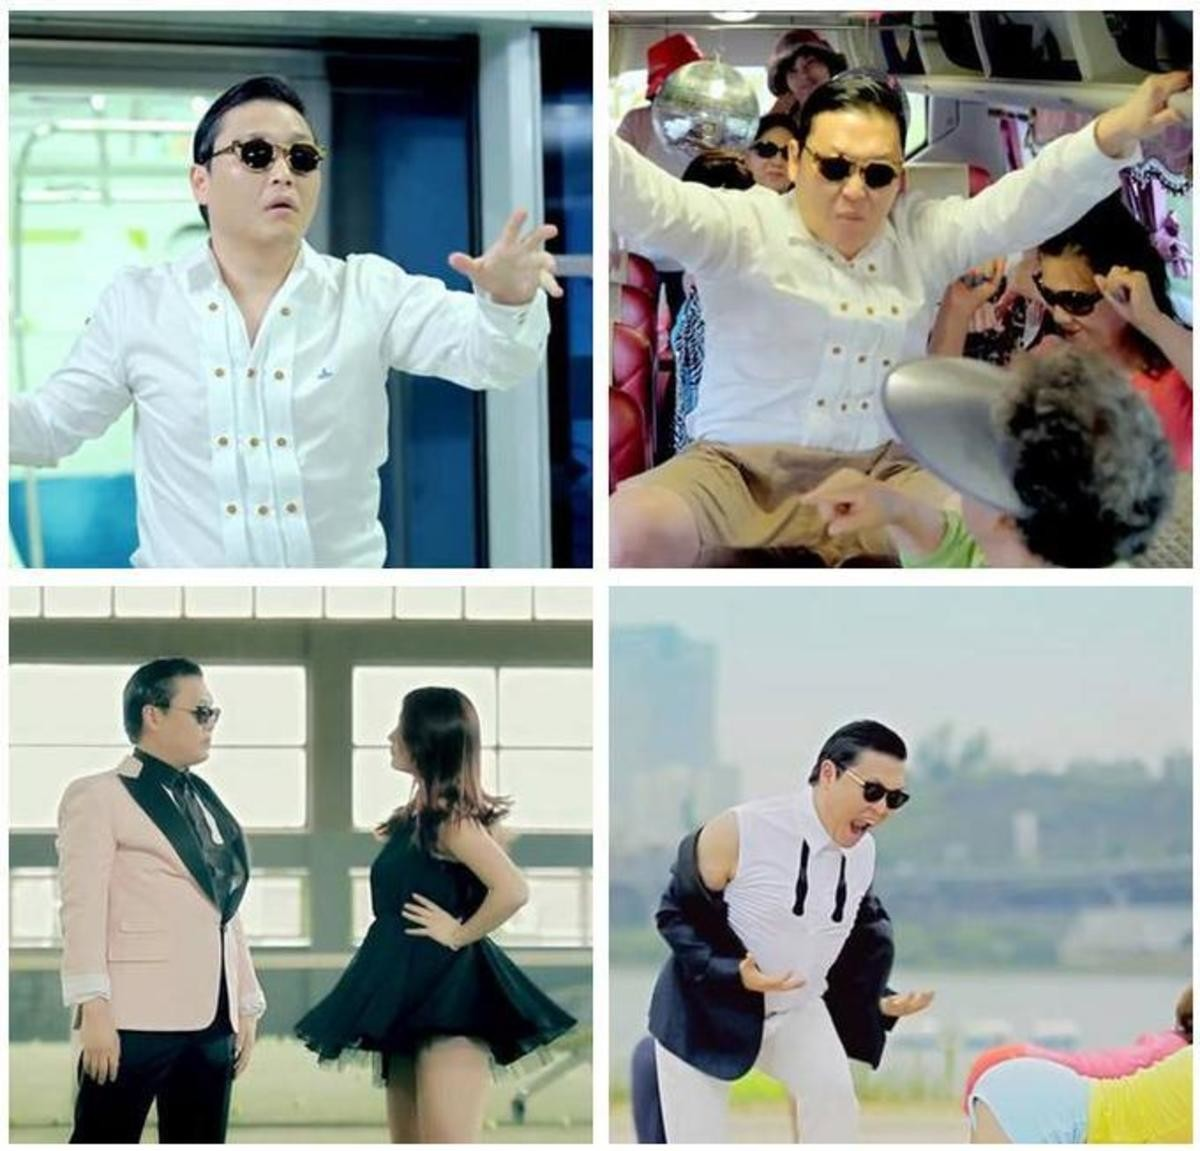 Is PSY still relevant?. .. Look here you little